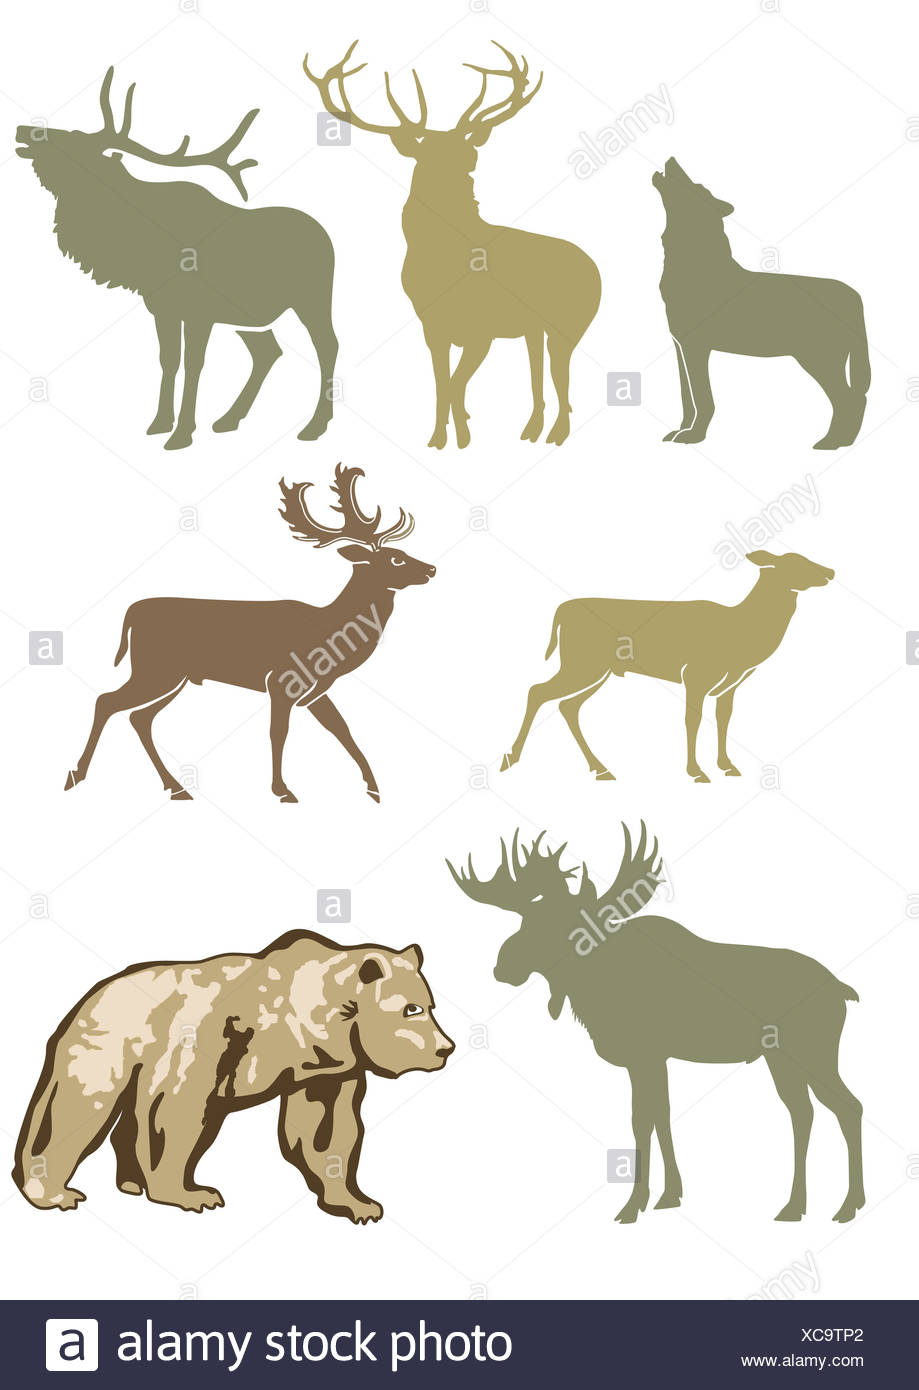 Forest Animals - Stock Image